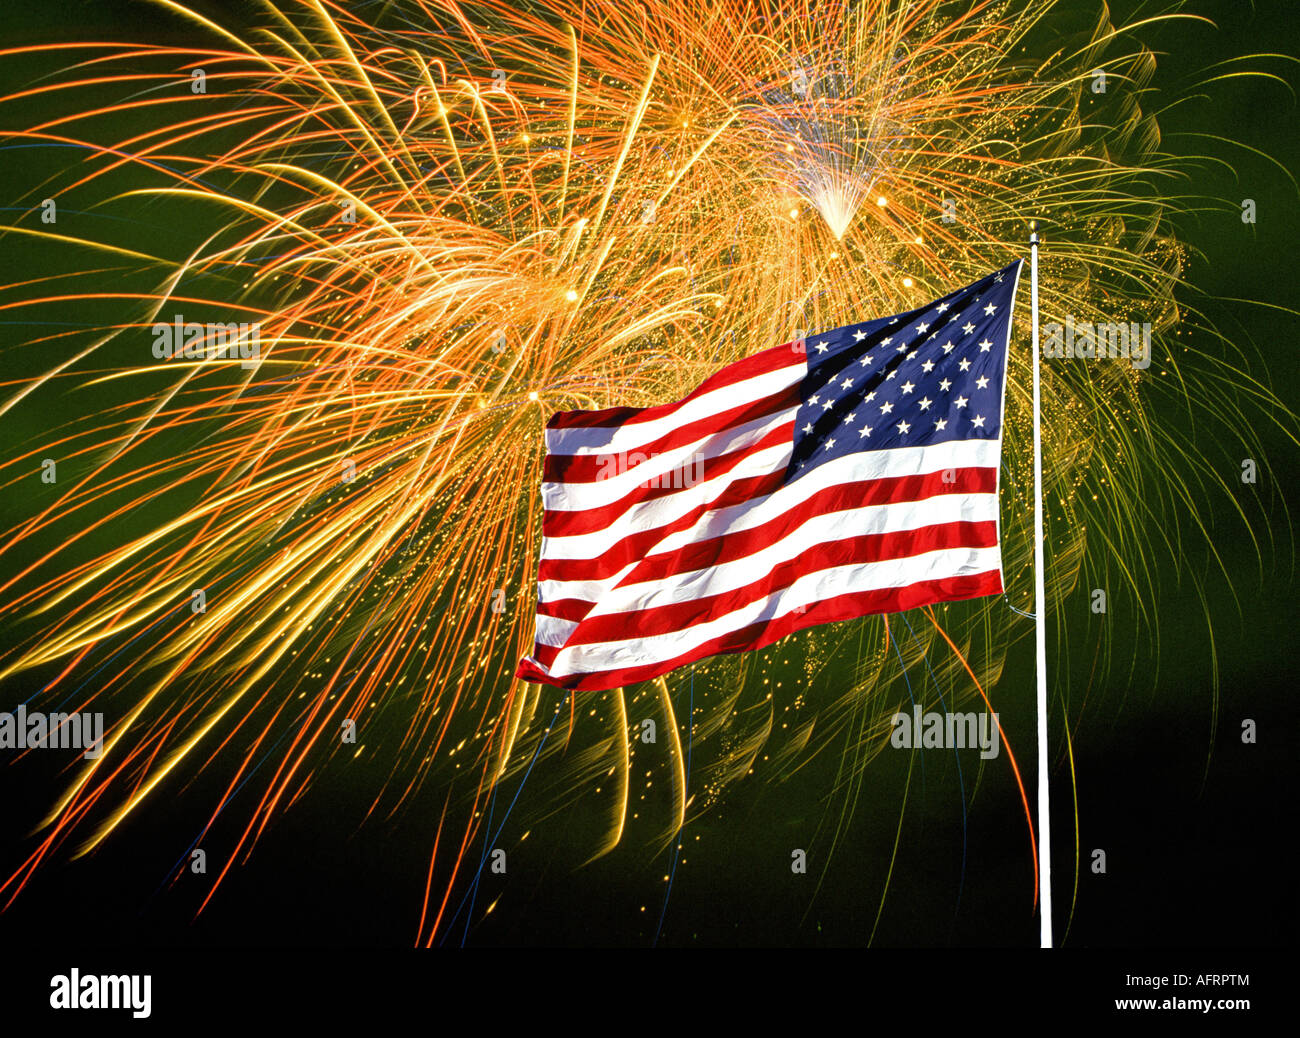 an american flag in front of a fireworks display on july the 4th the fourth of july